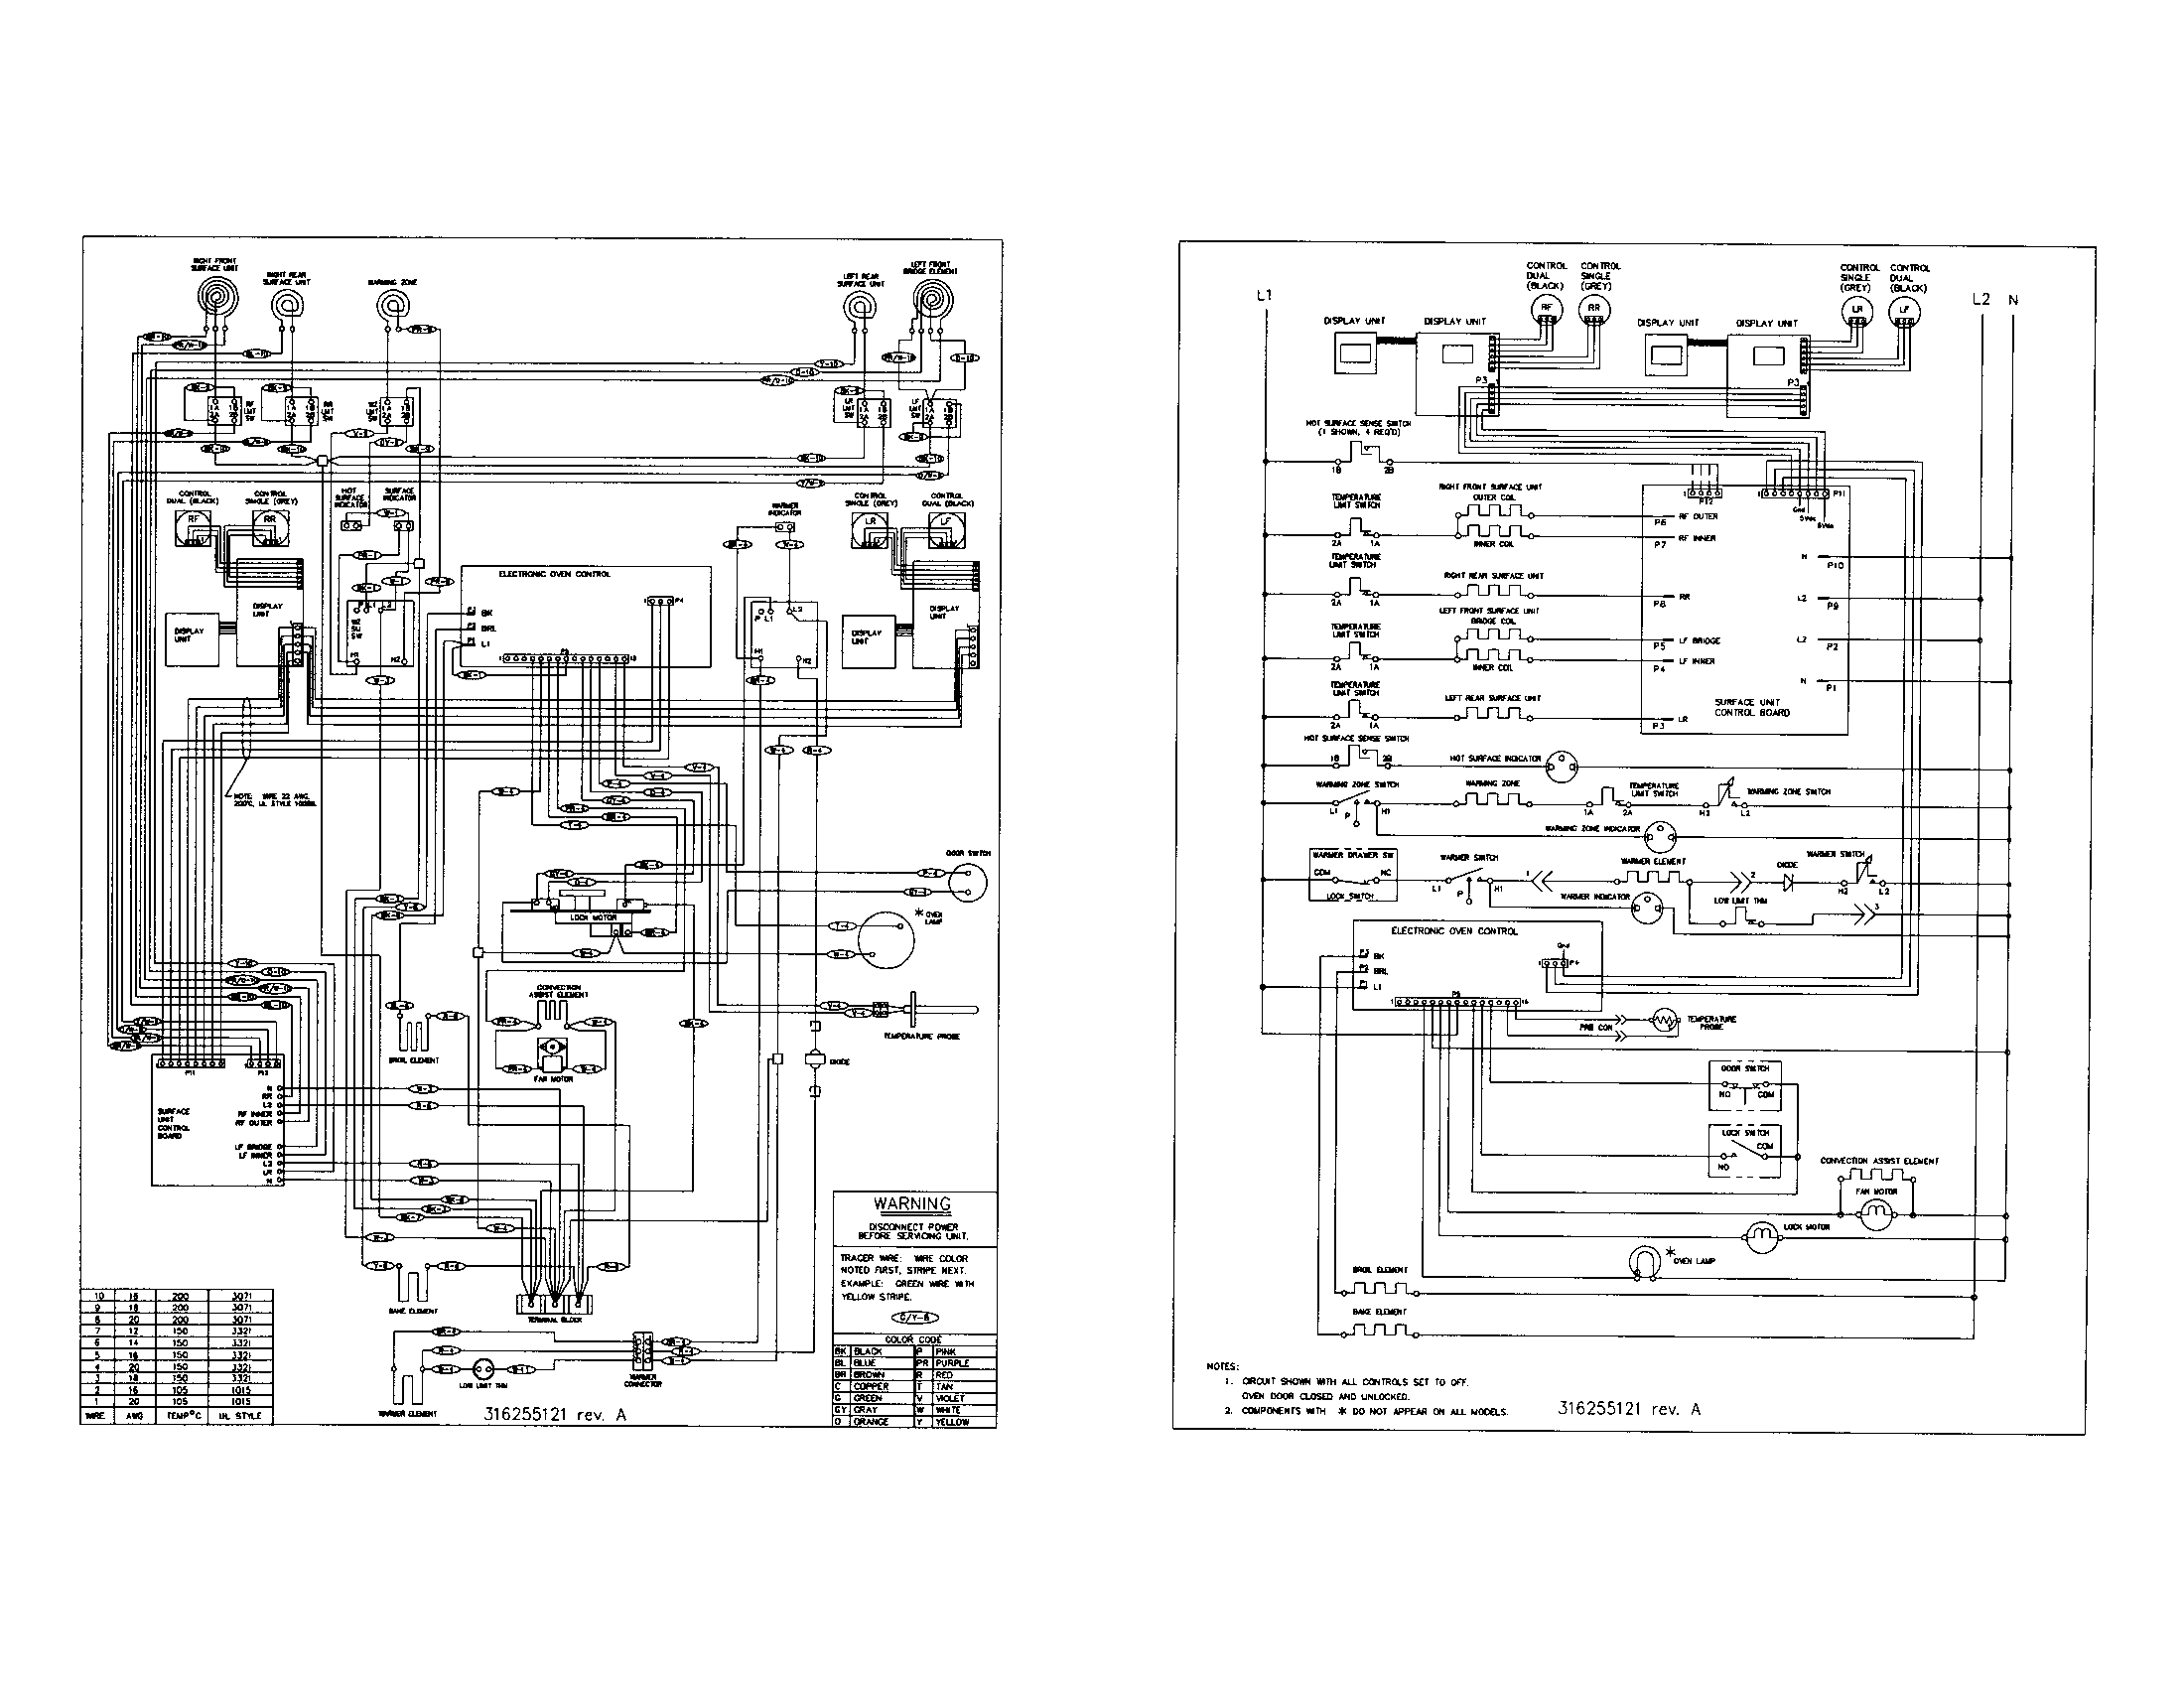 3 phase plug wiring diagram with Index on 220 Volt Ac Wiring moreover PinSleeve additionally Allison 1000 Transmission Wiring Diagram together with How To Connect A Three Phase Monitor Relay in addition Wiring Diagram For 230v Single Phase Motor.